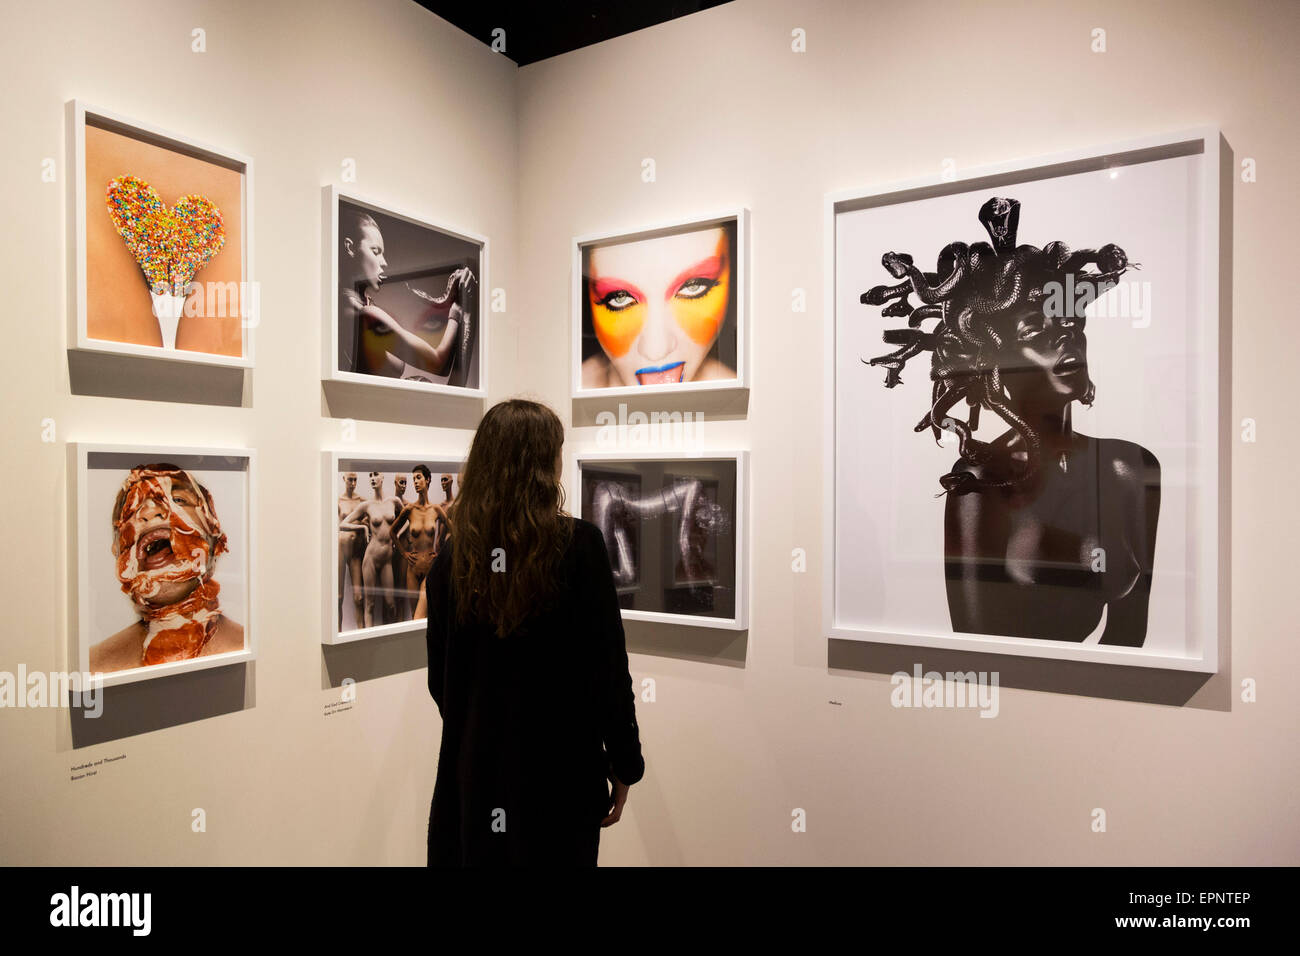 London, UK. 20 May 2015. British photographer Rankin is also present at the fair. Press preview of the art fair - Stock Image